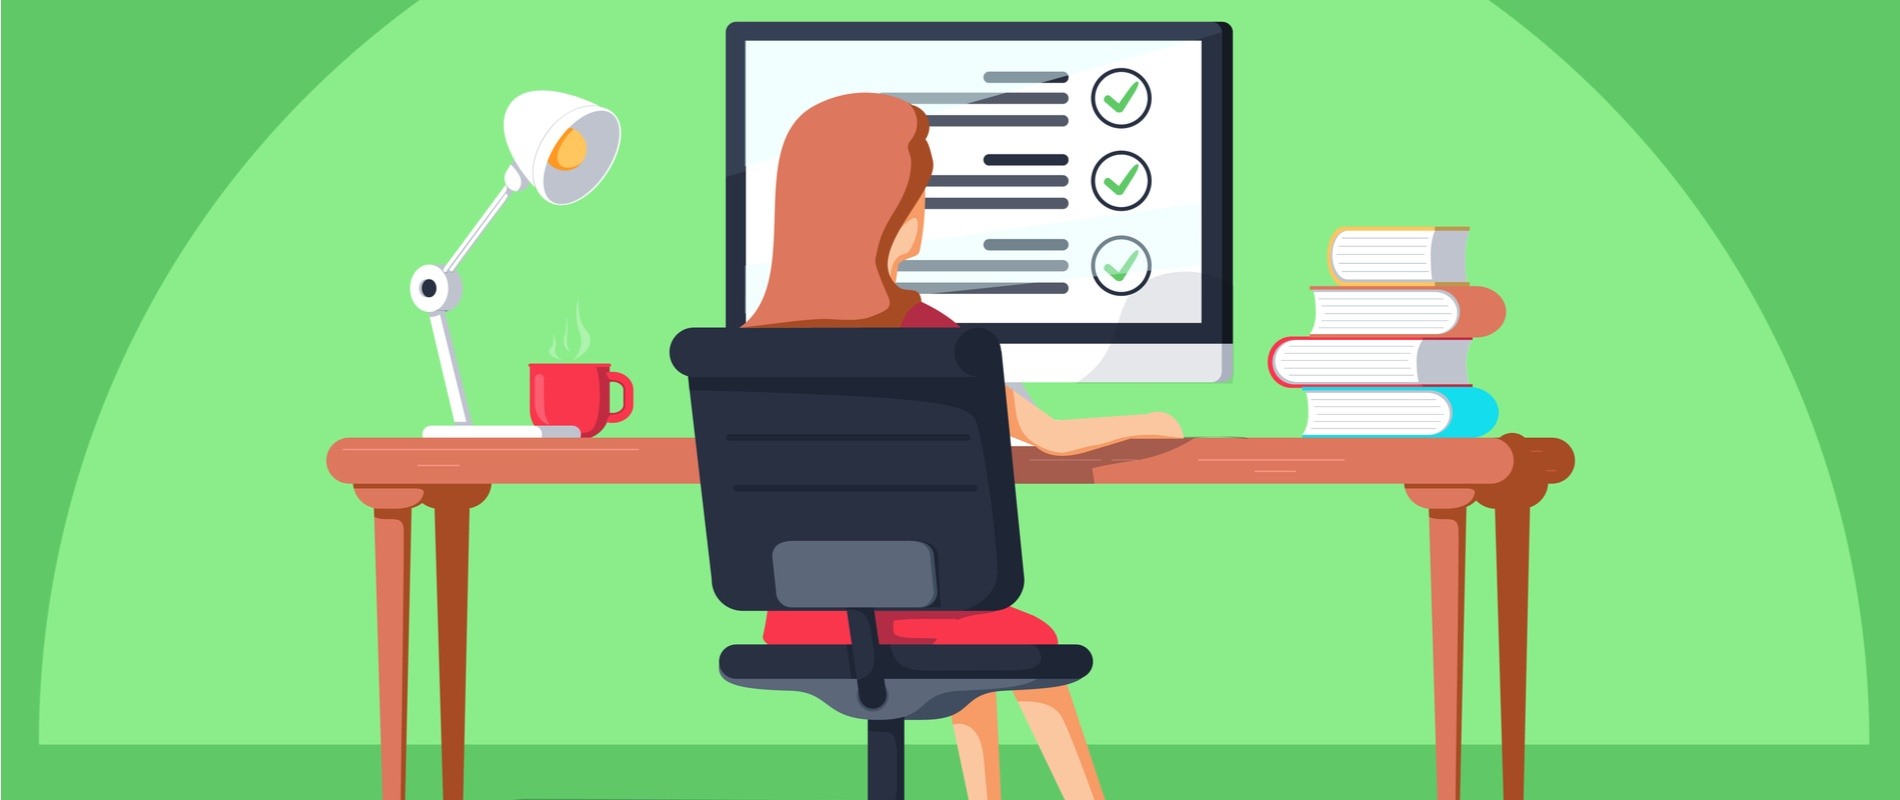 The Beginner's Guide To Being A Digital Marketing Intern